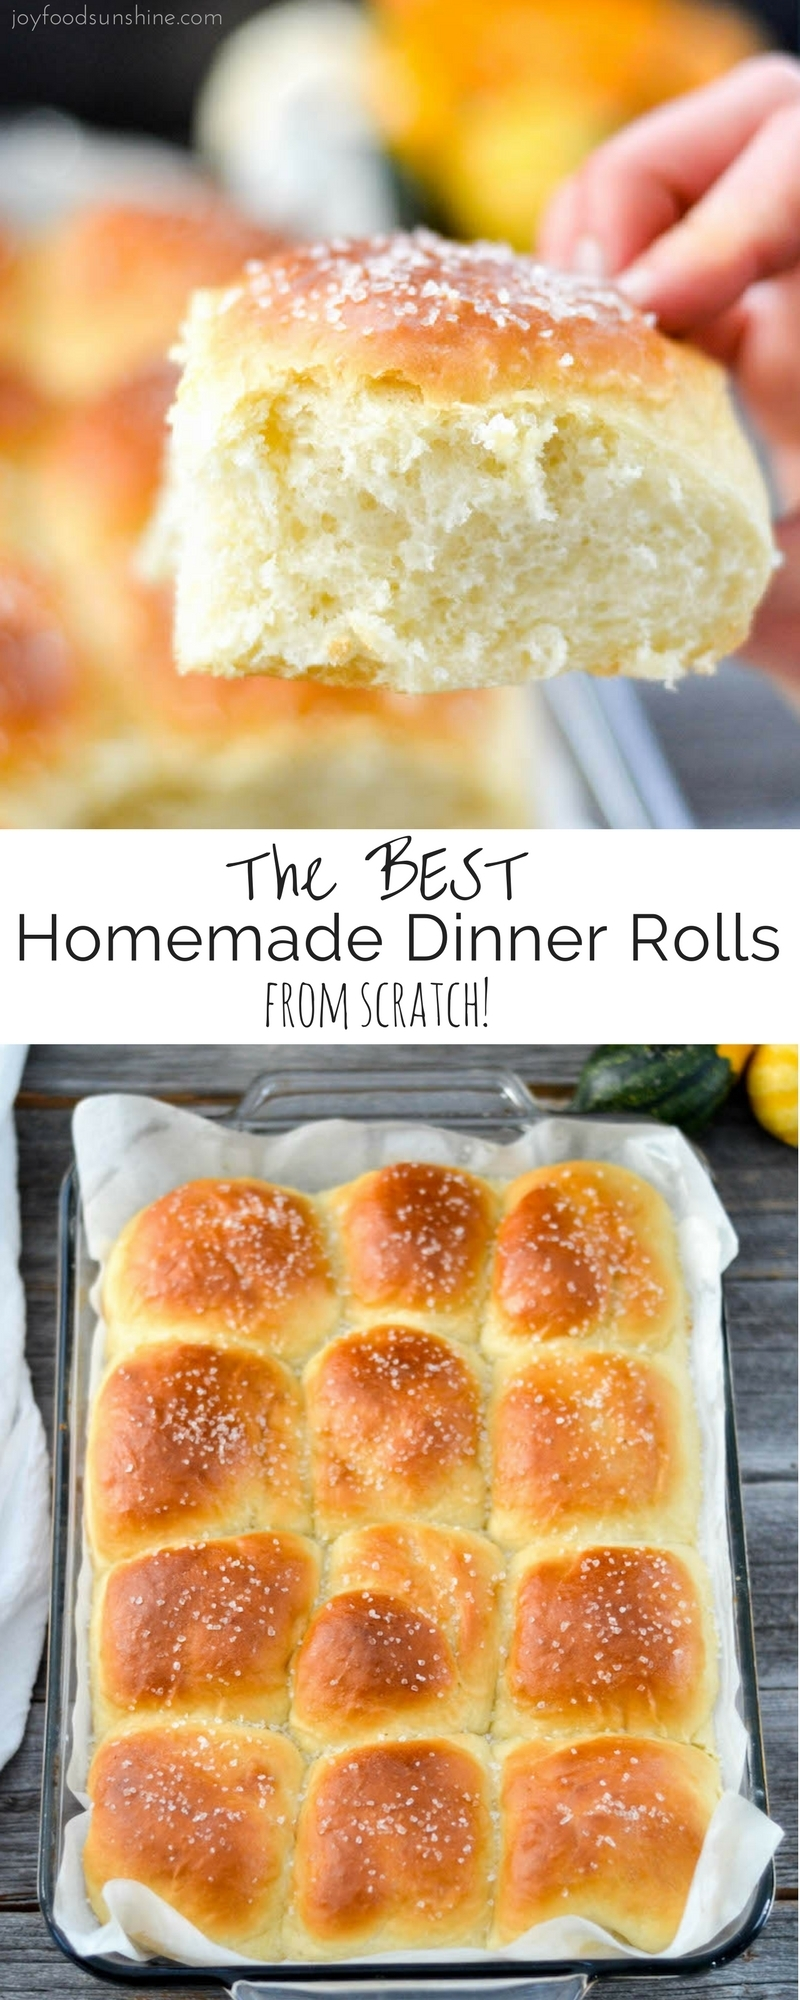 The Best Homemade Dinner Rolls recipe